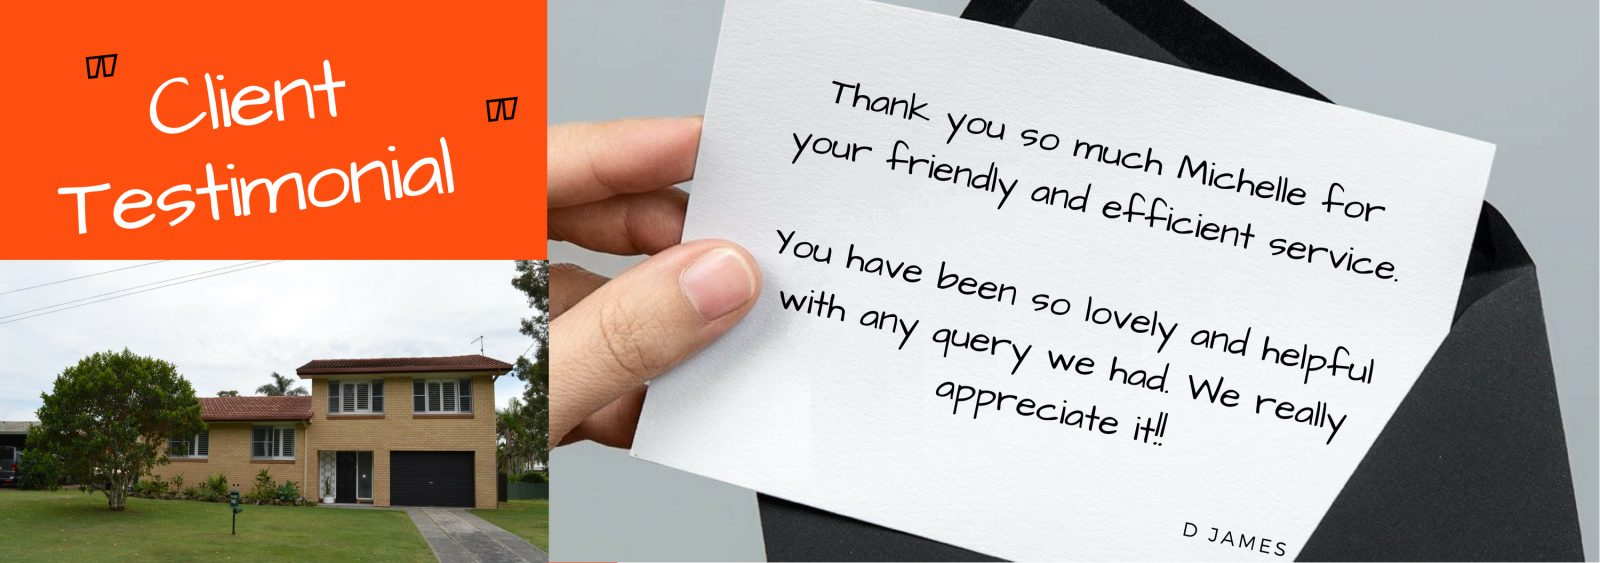 Testimonial - Thank you so much Michelle for your friendly and efficient service. You have been so lovely and helpful with any query we had. We really appreciate it!! D James